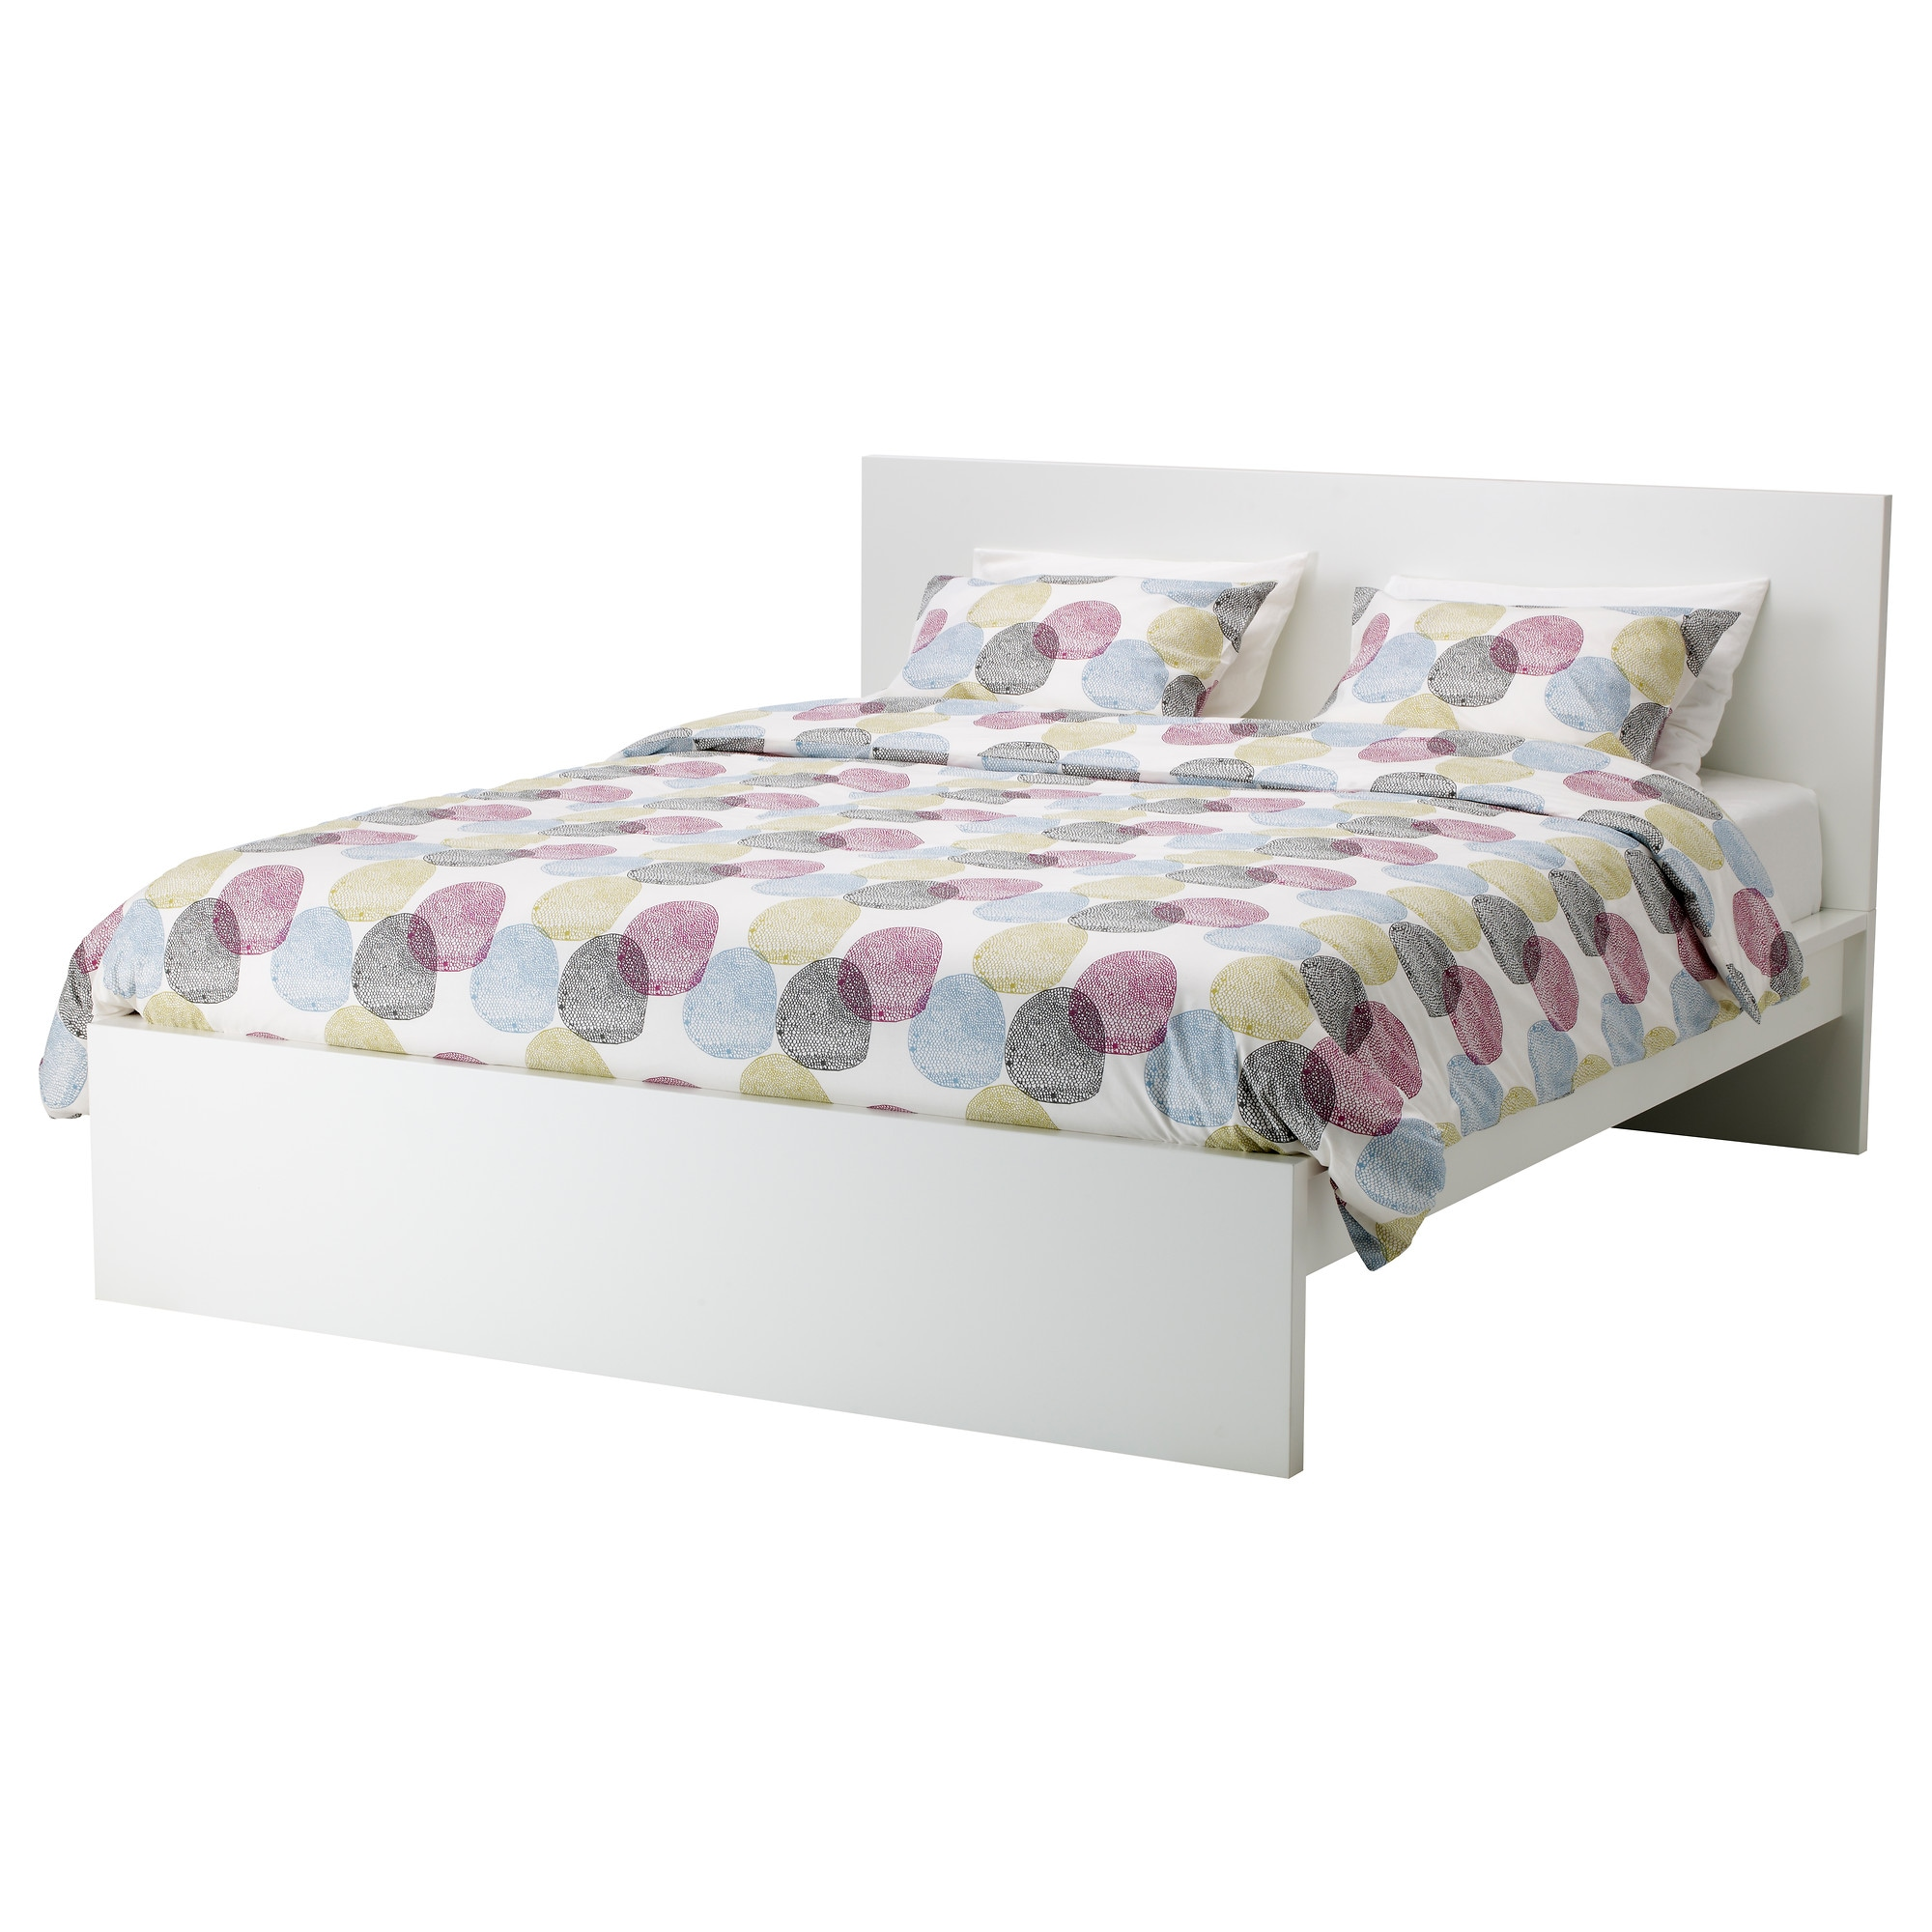 products gry log panel dayton iml cincinnati moreno bedroom kentucky browse highland columbus bed queen size beds frame ohio northern court